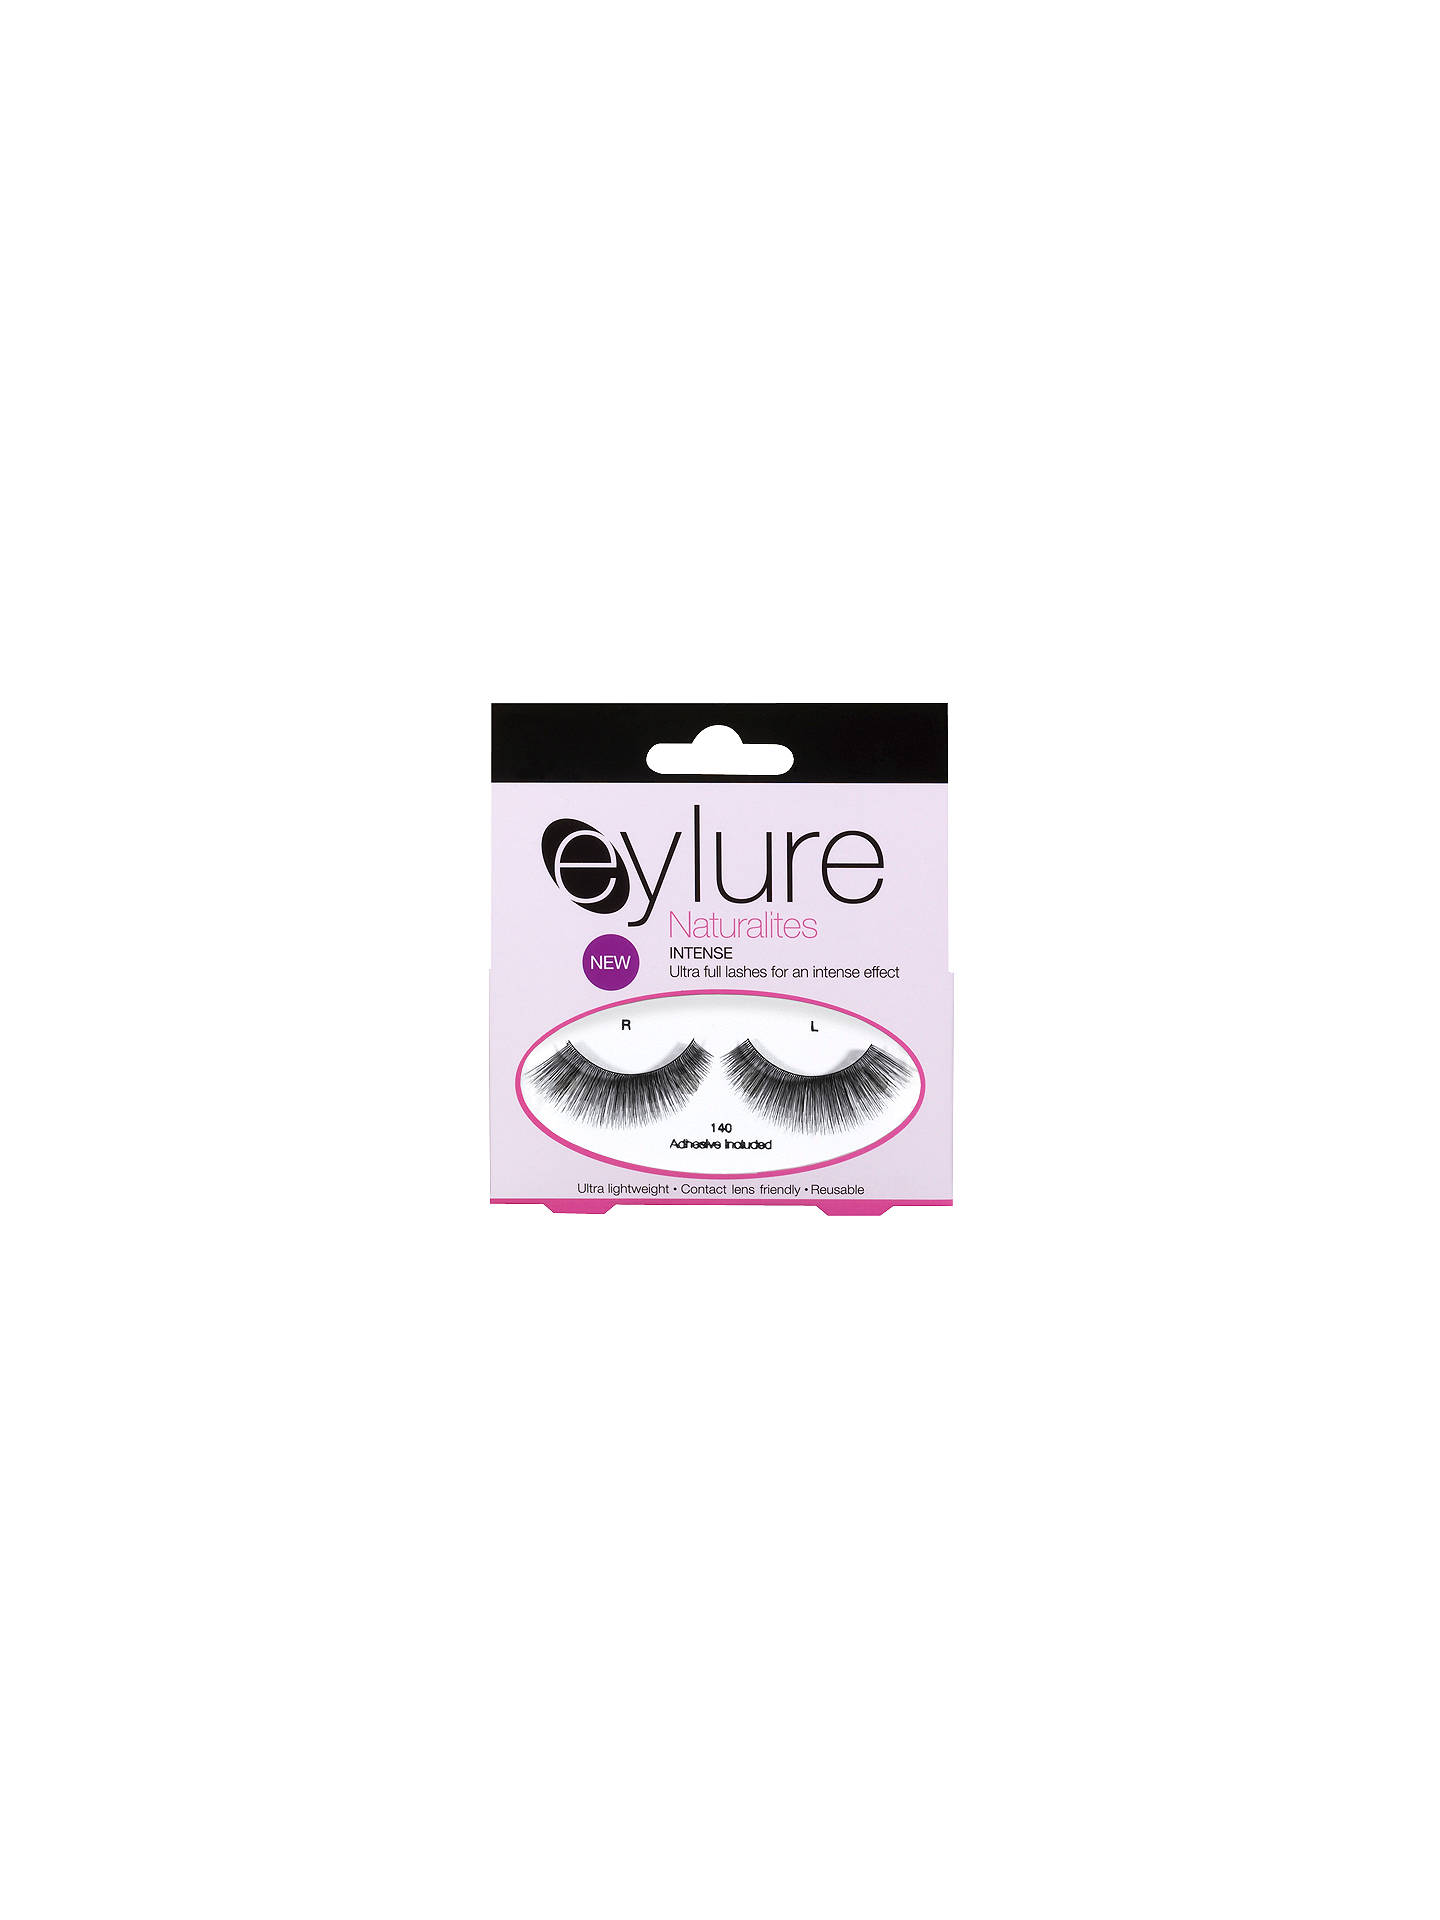 BuyEylure Naturalites Intense Full False Eyelashes Online at johnlewis.com